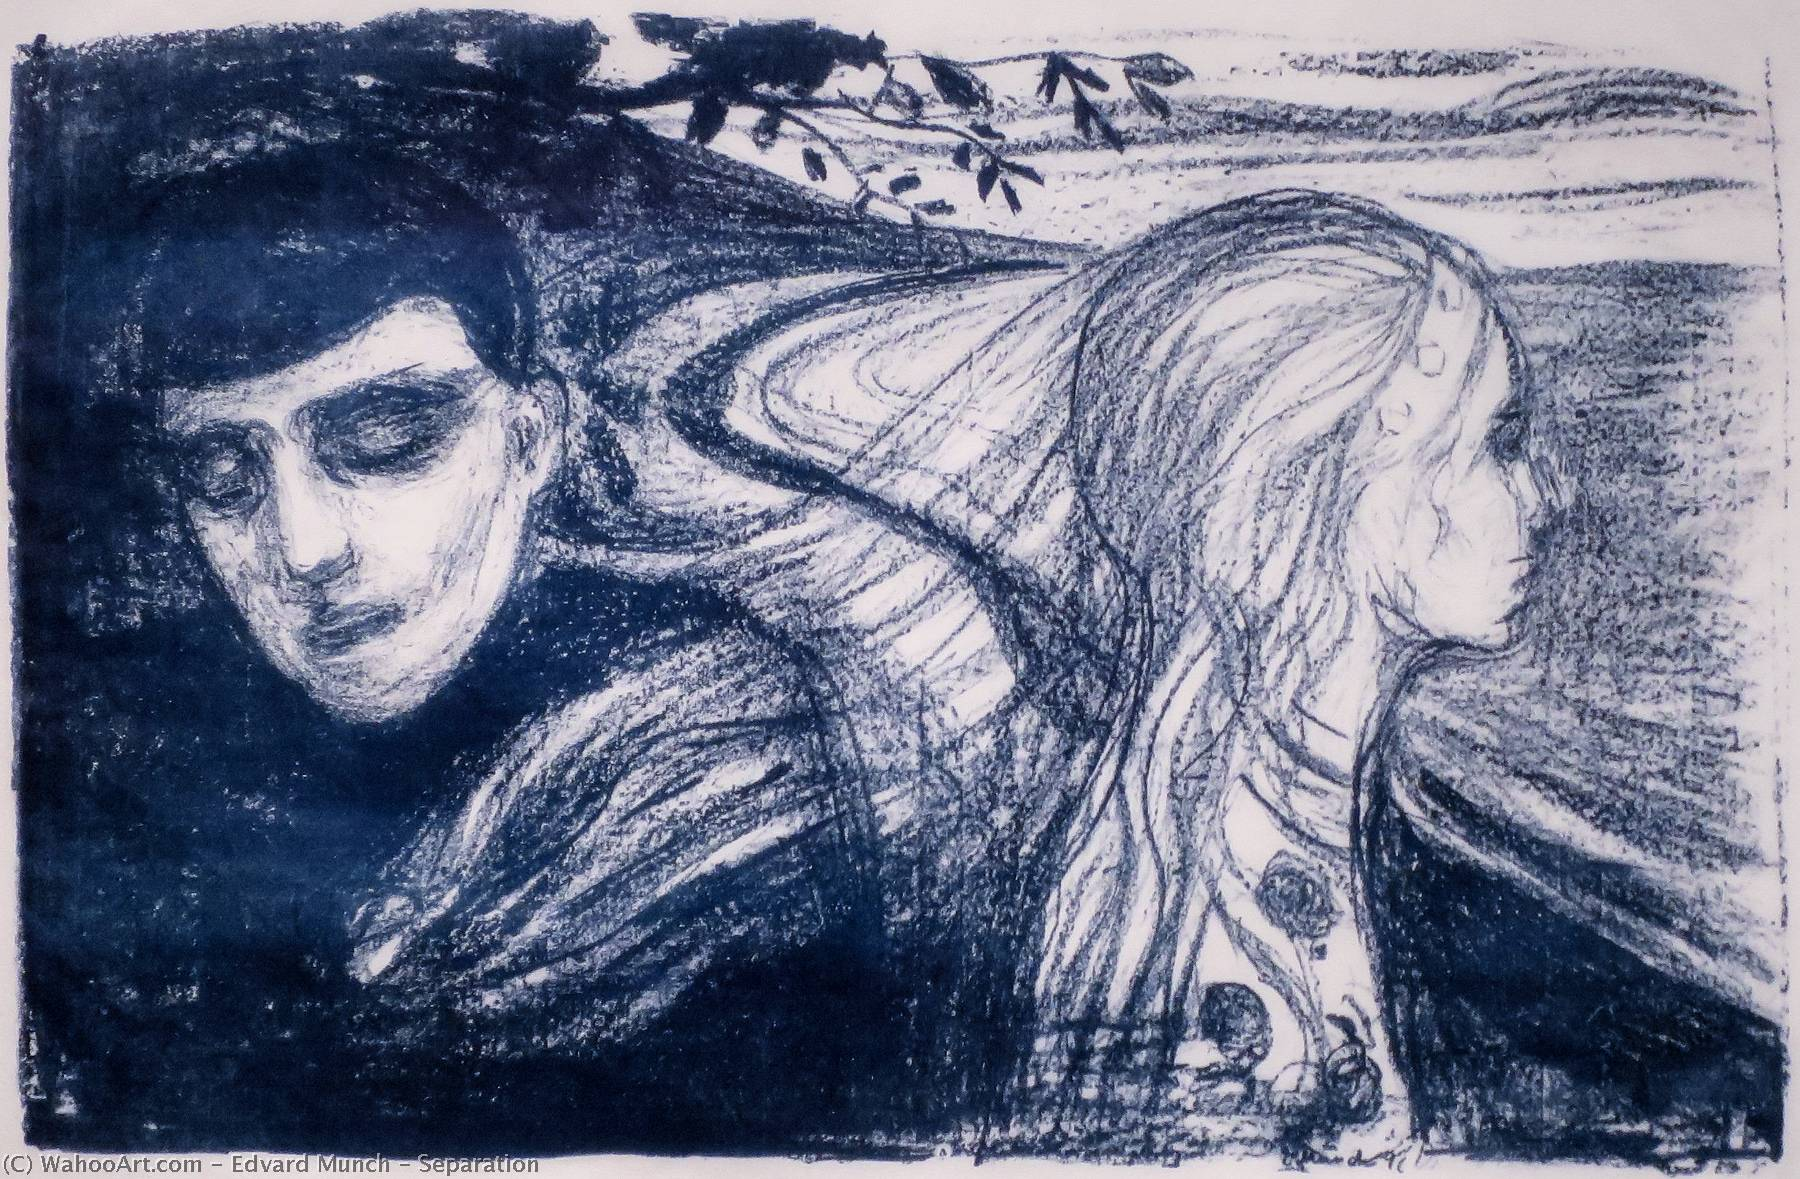 Order Art Reproduction : Separation, 1896 by Edvard Munch (1863-1944, Sweden) | WahooArt.com